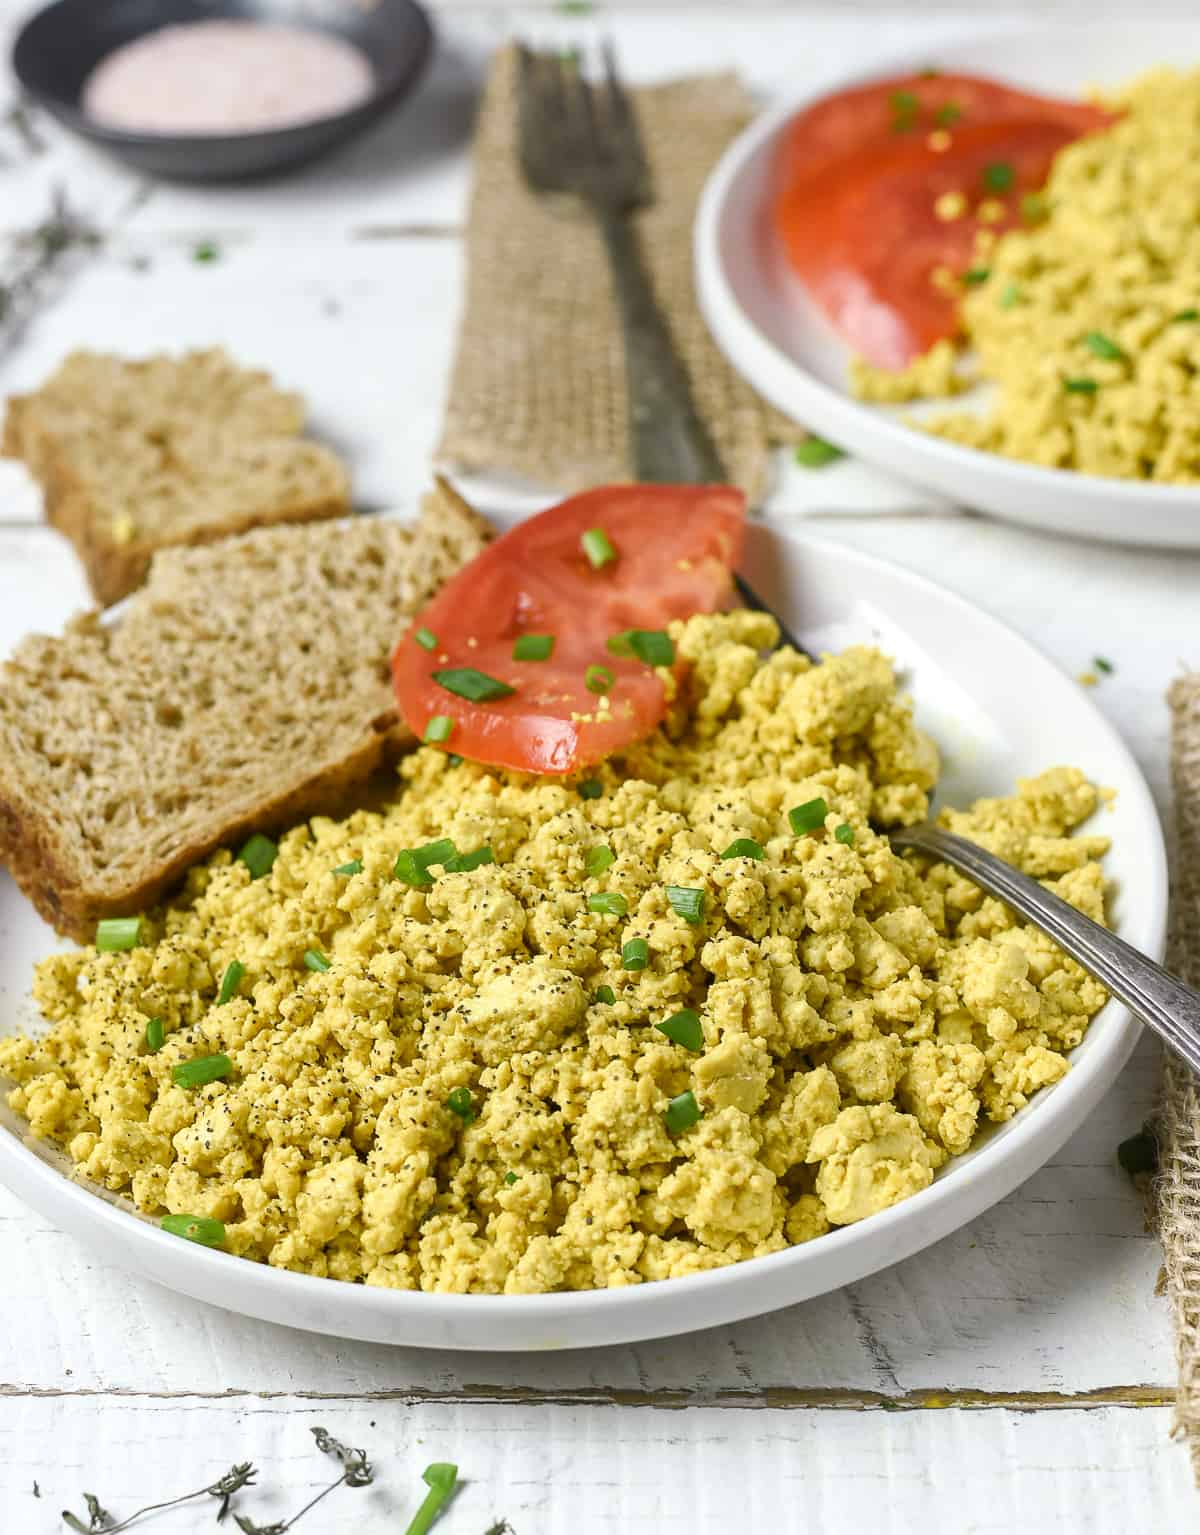 Tofu scramble on plate with fork.